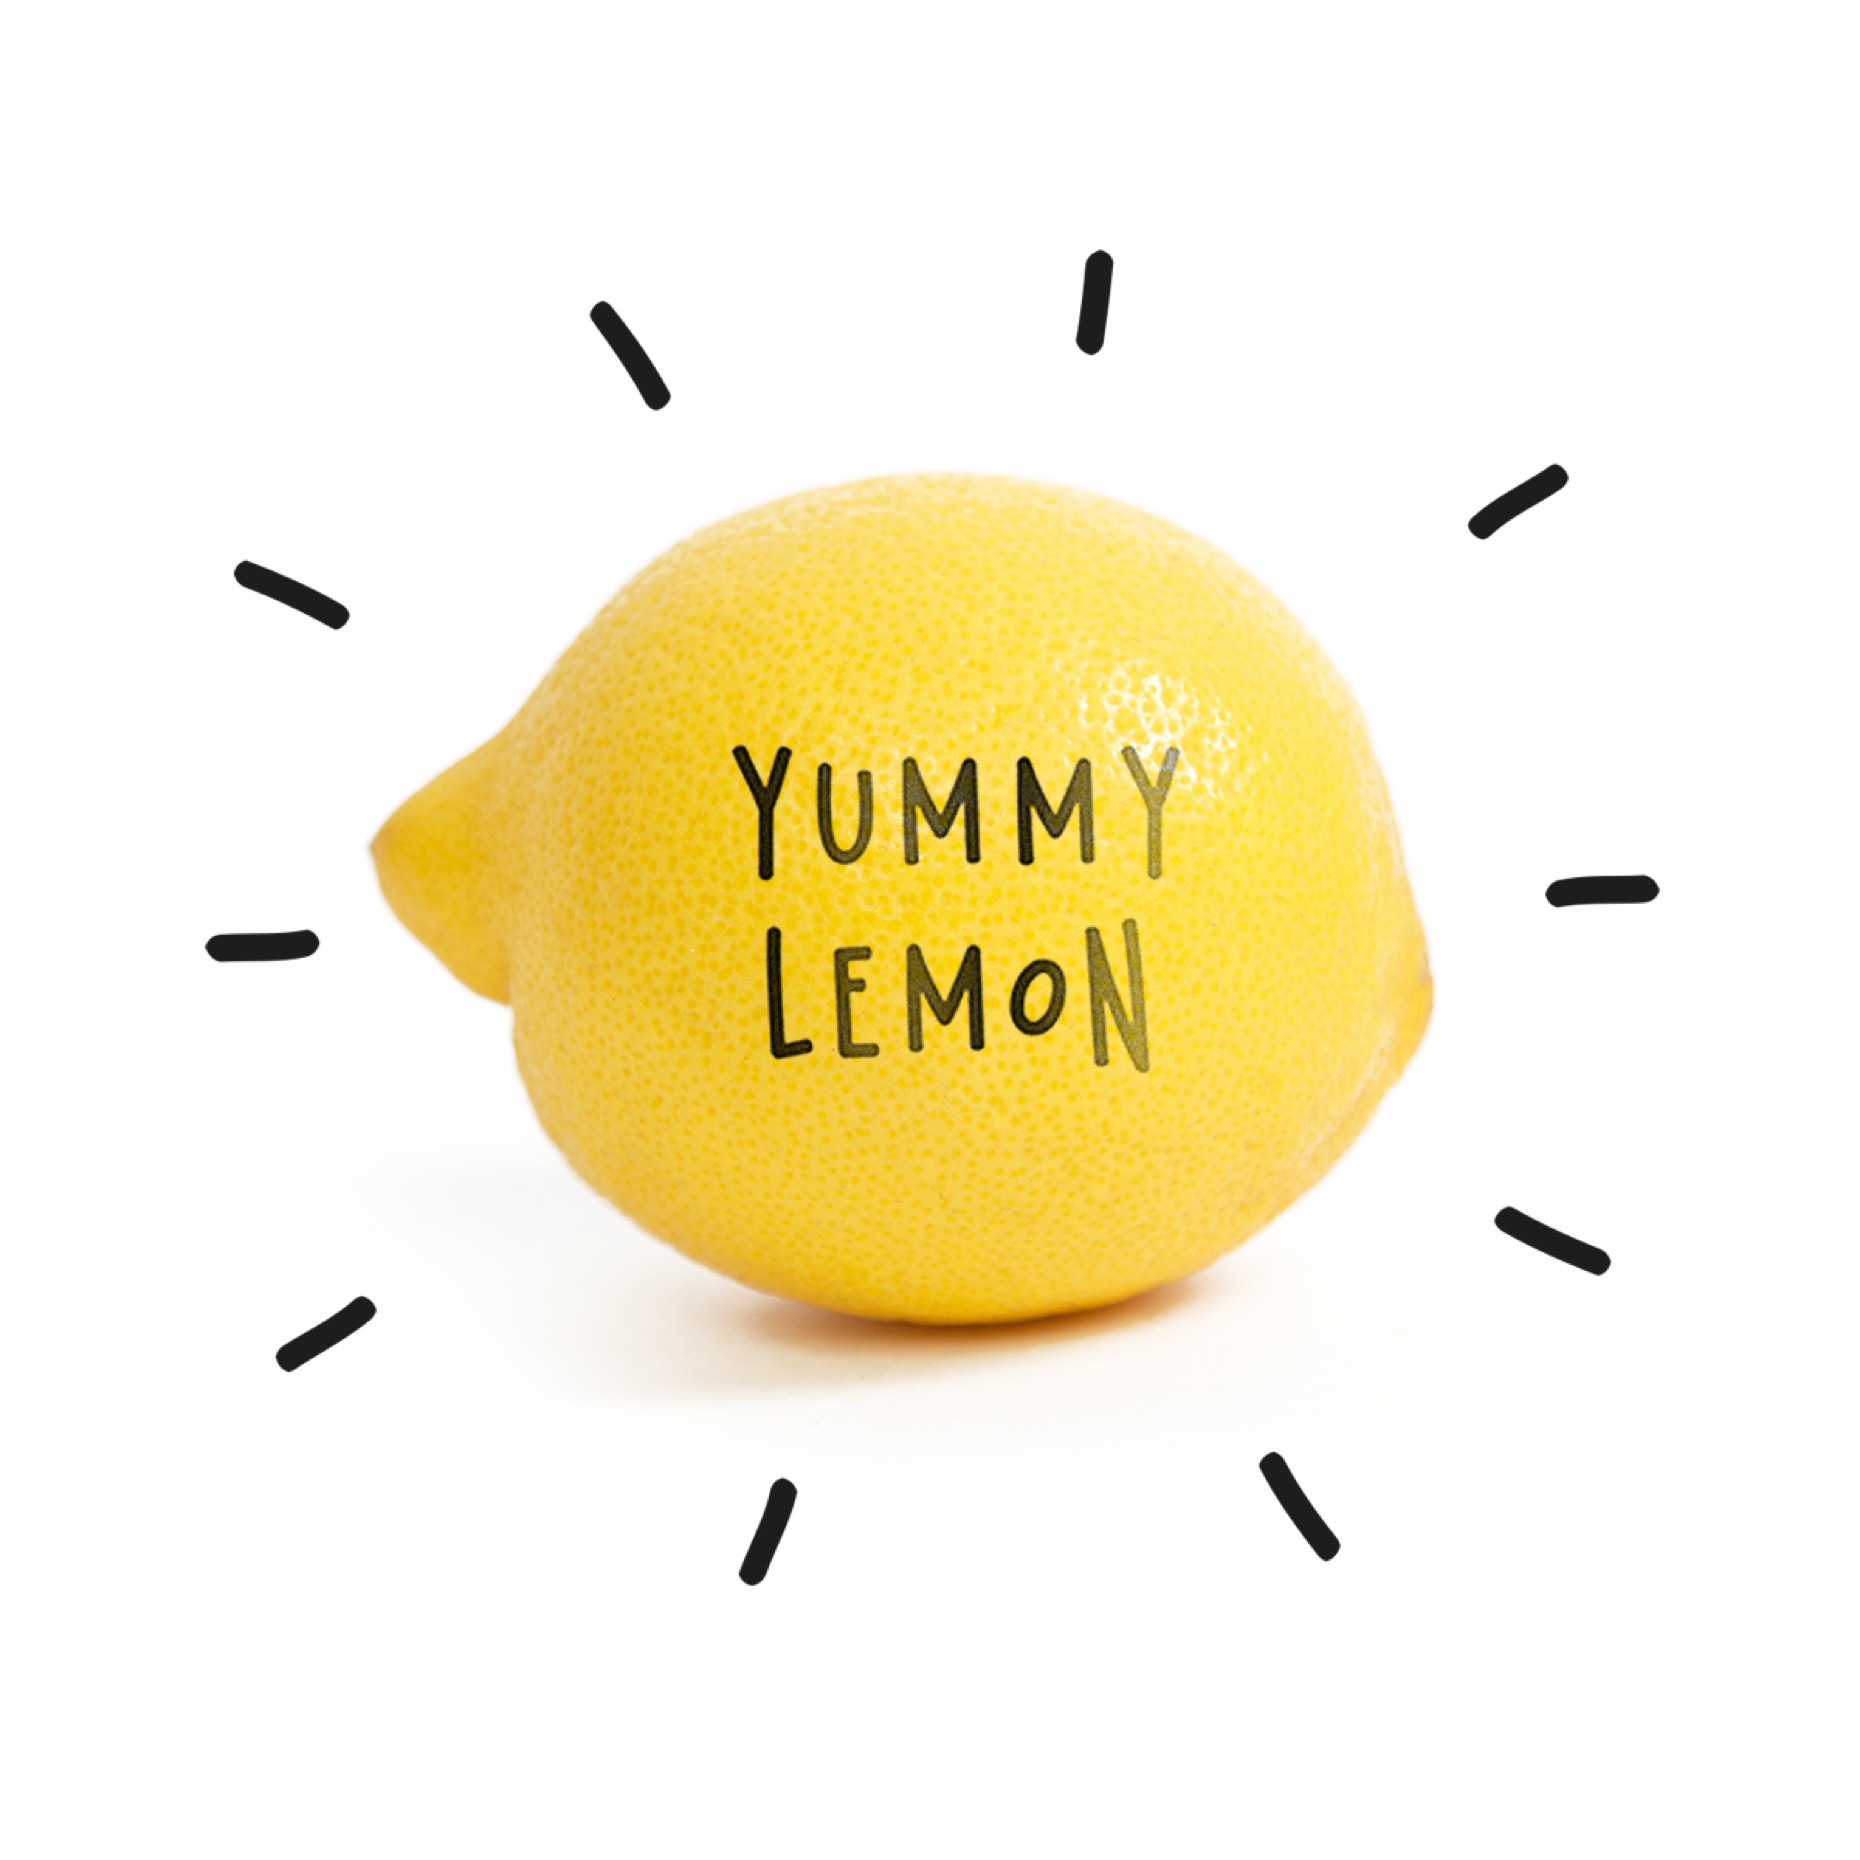 Yummy Lemon